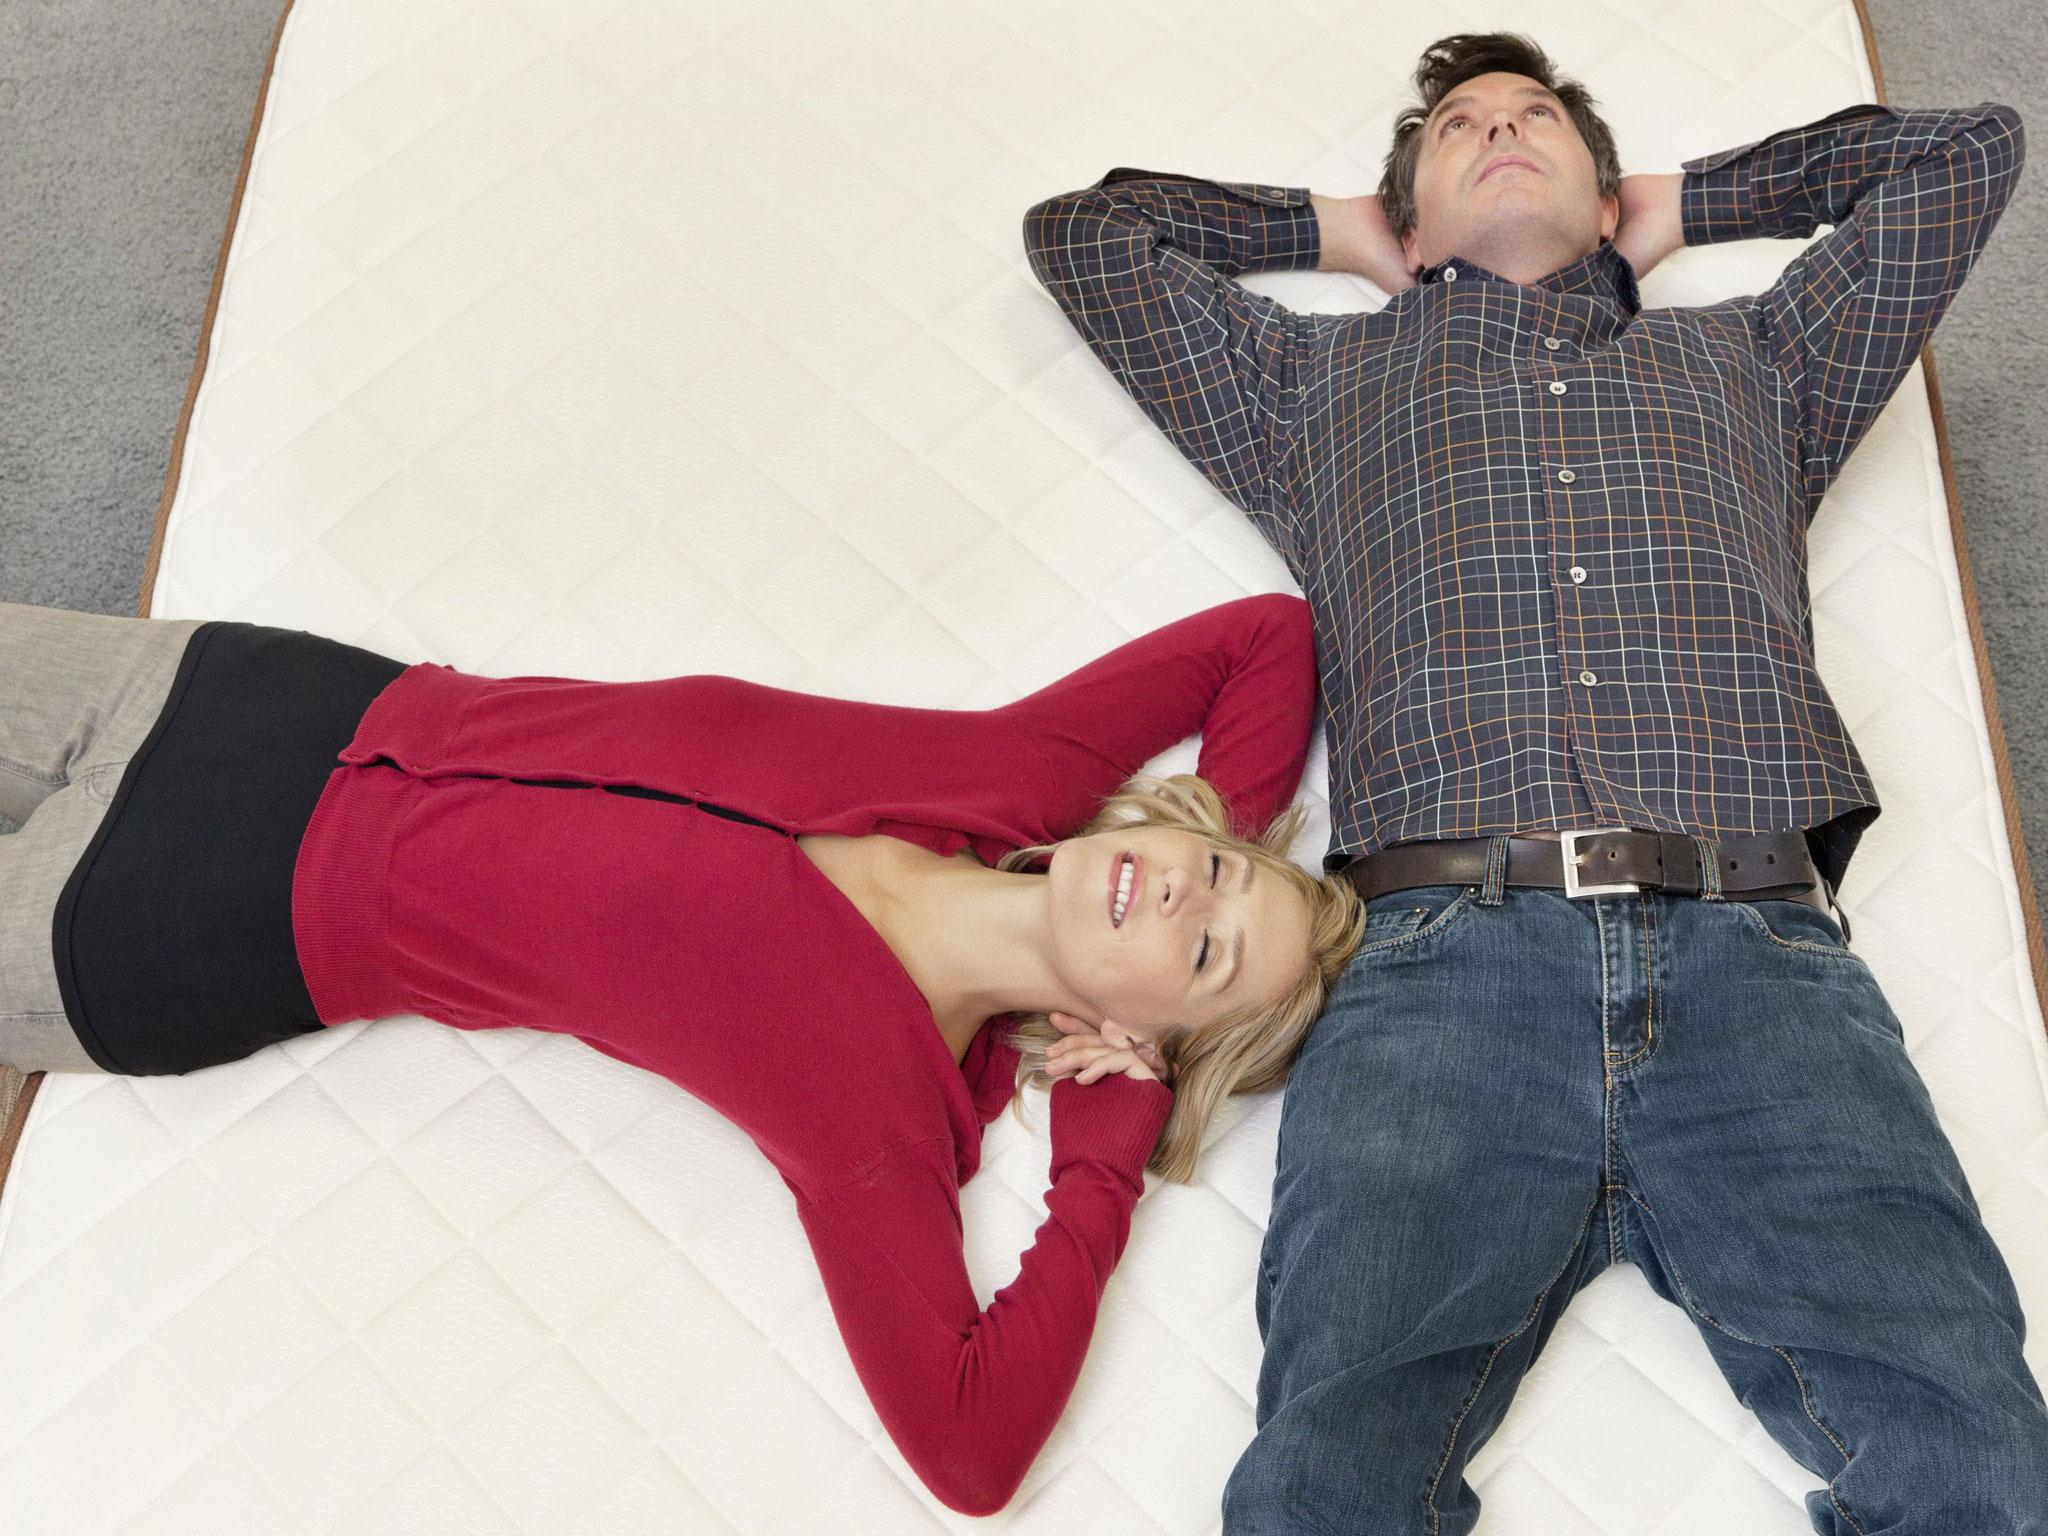 Mattress buying guide: how to choose a mattress